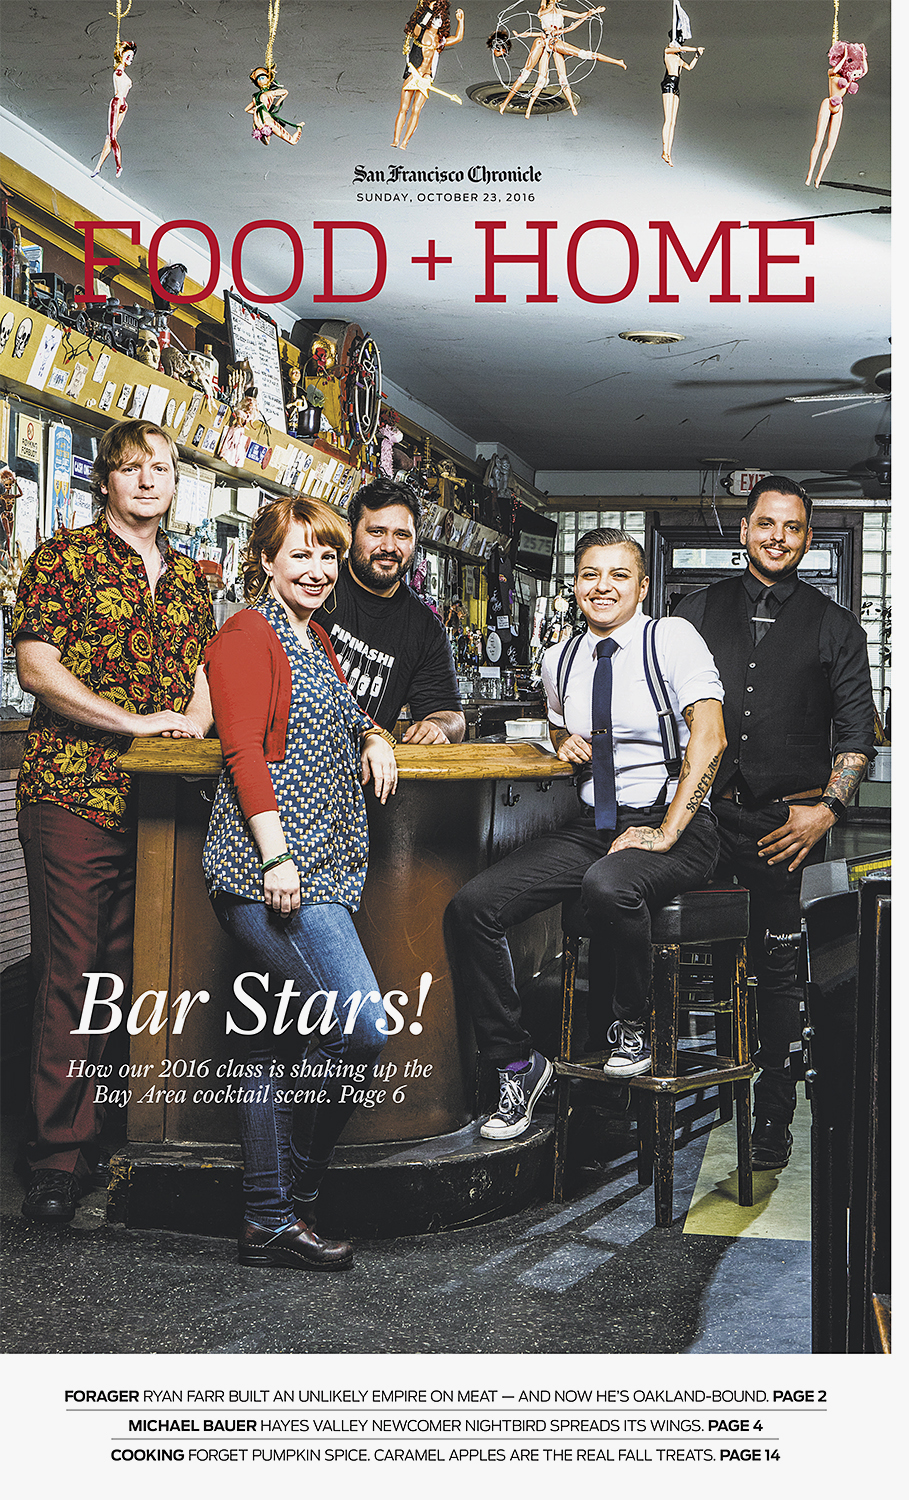 Bar Stars for the San Francisco Chronicle.